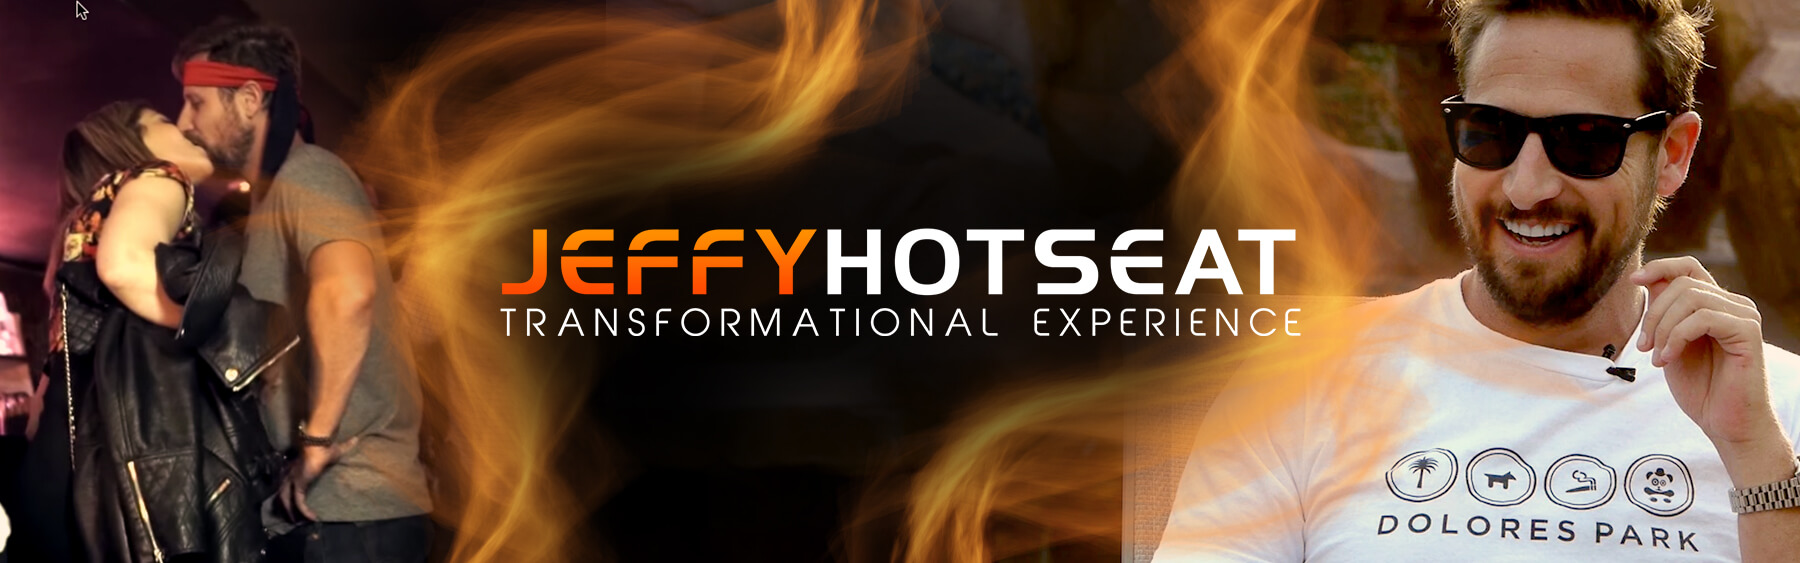 Jeffy Hot Seat Transformational Experience